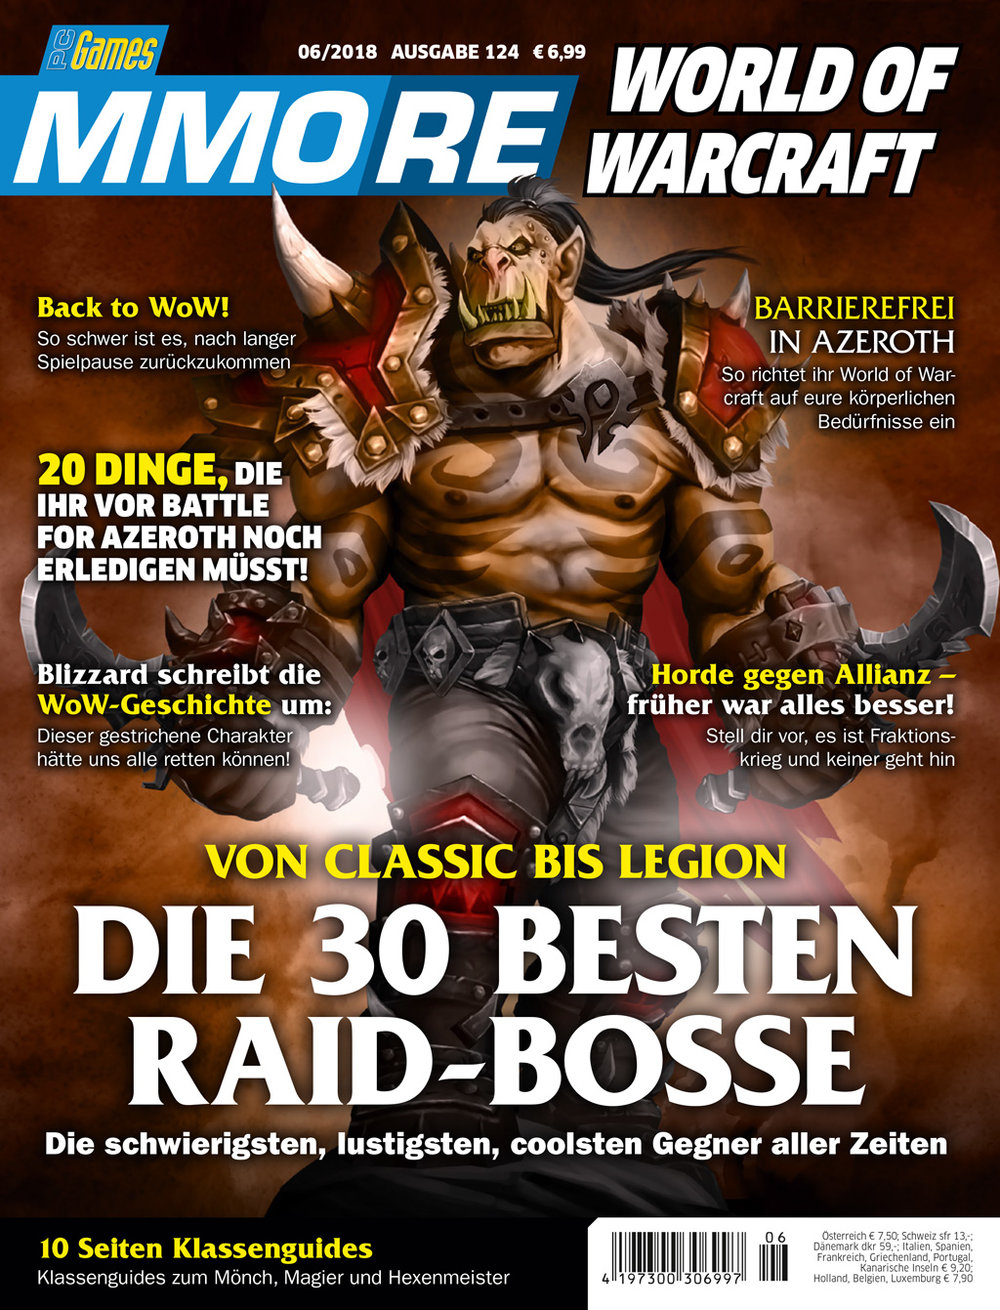 PC Games MMORE ePaper 06/2018